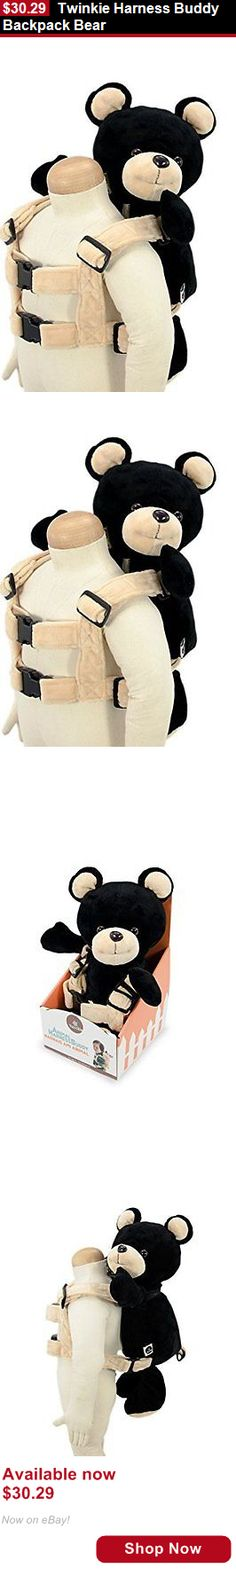 Toddler Safety Harnesses: Twinkie Harness Buddy Backpack Bear BUY IT NOW ONLY: $30.29